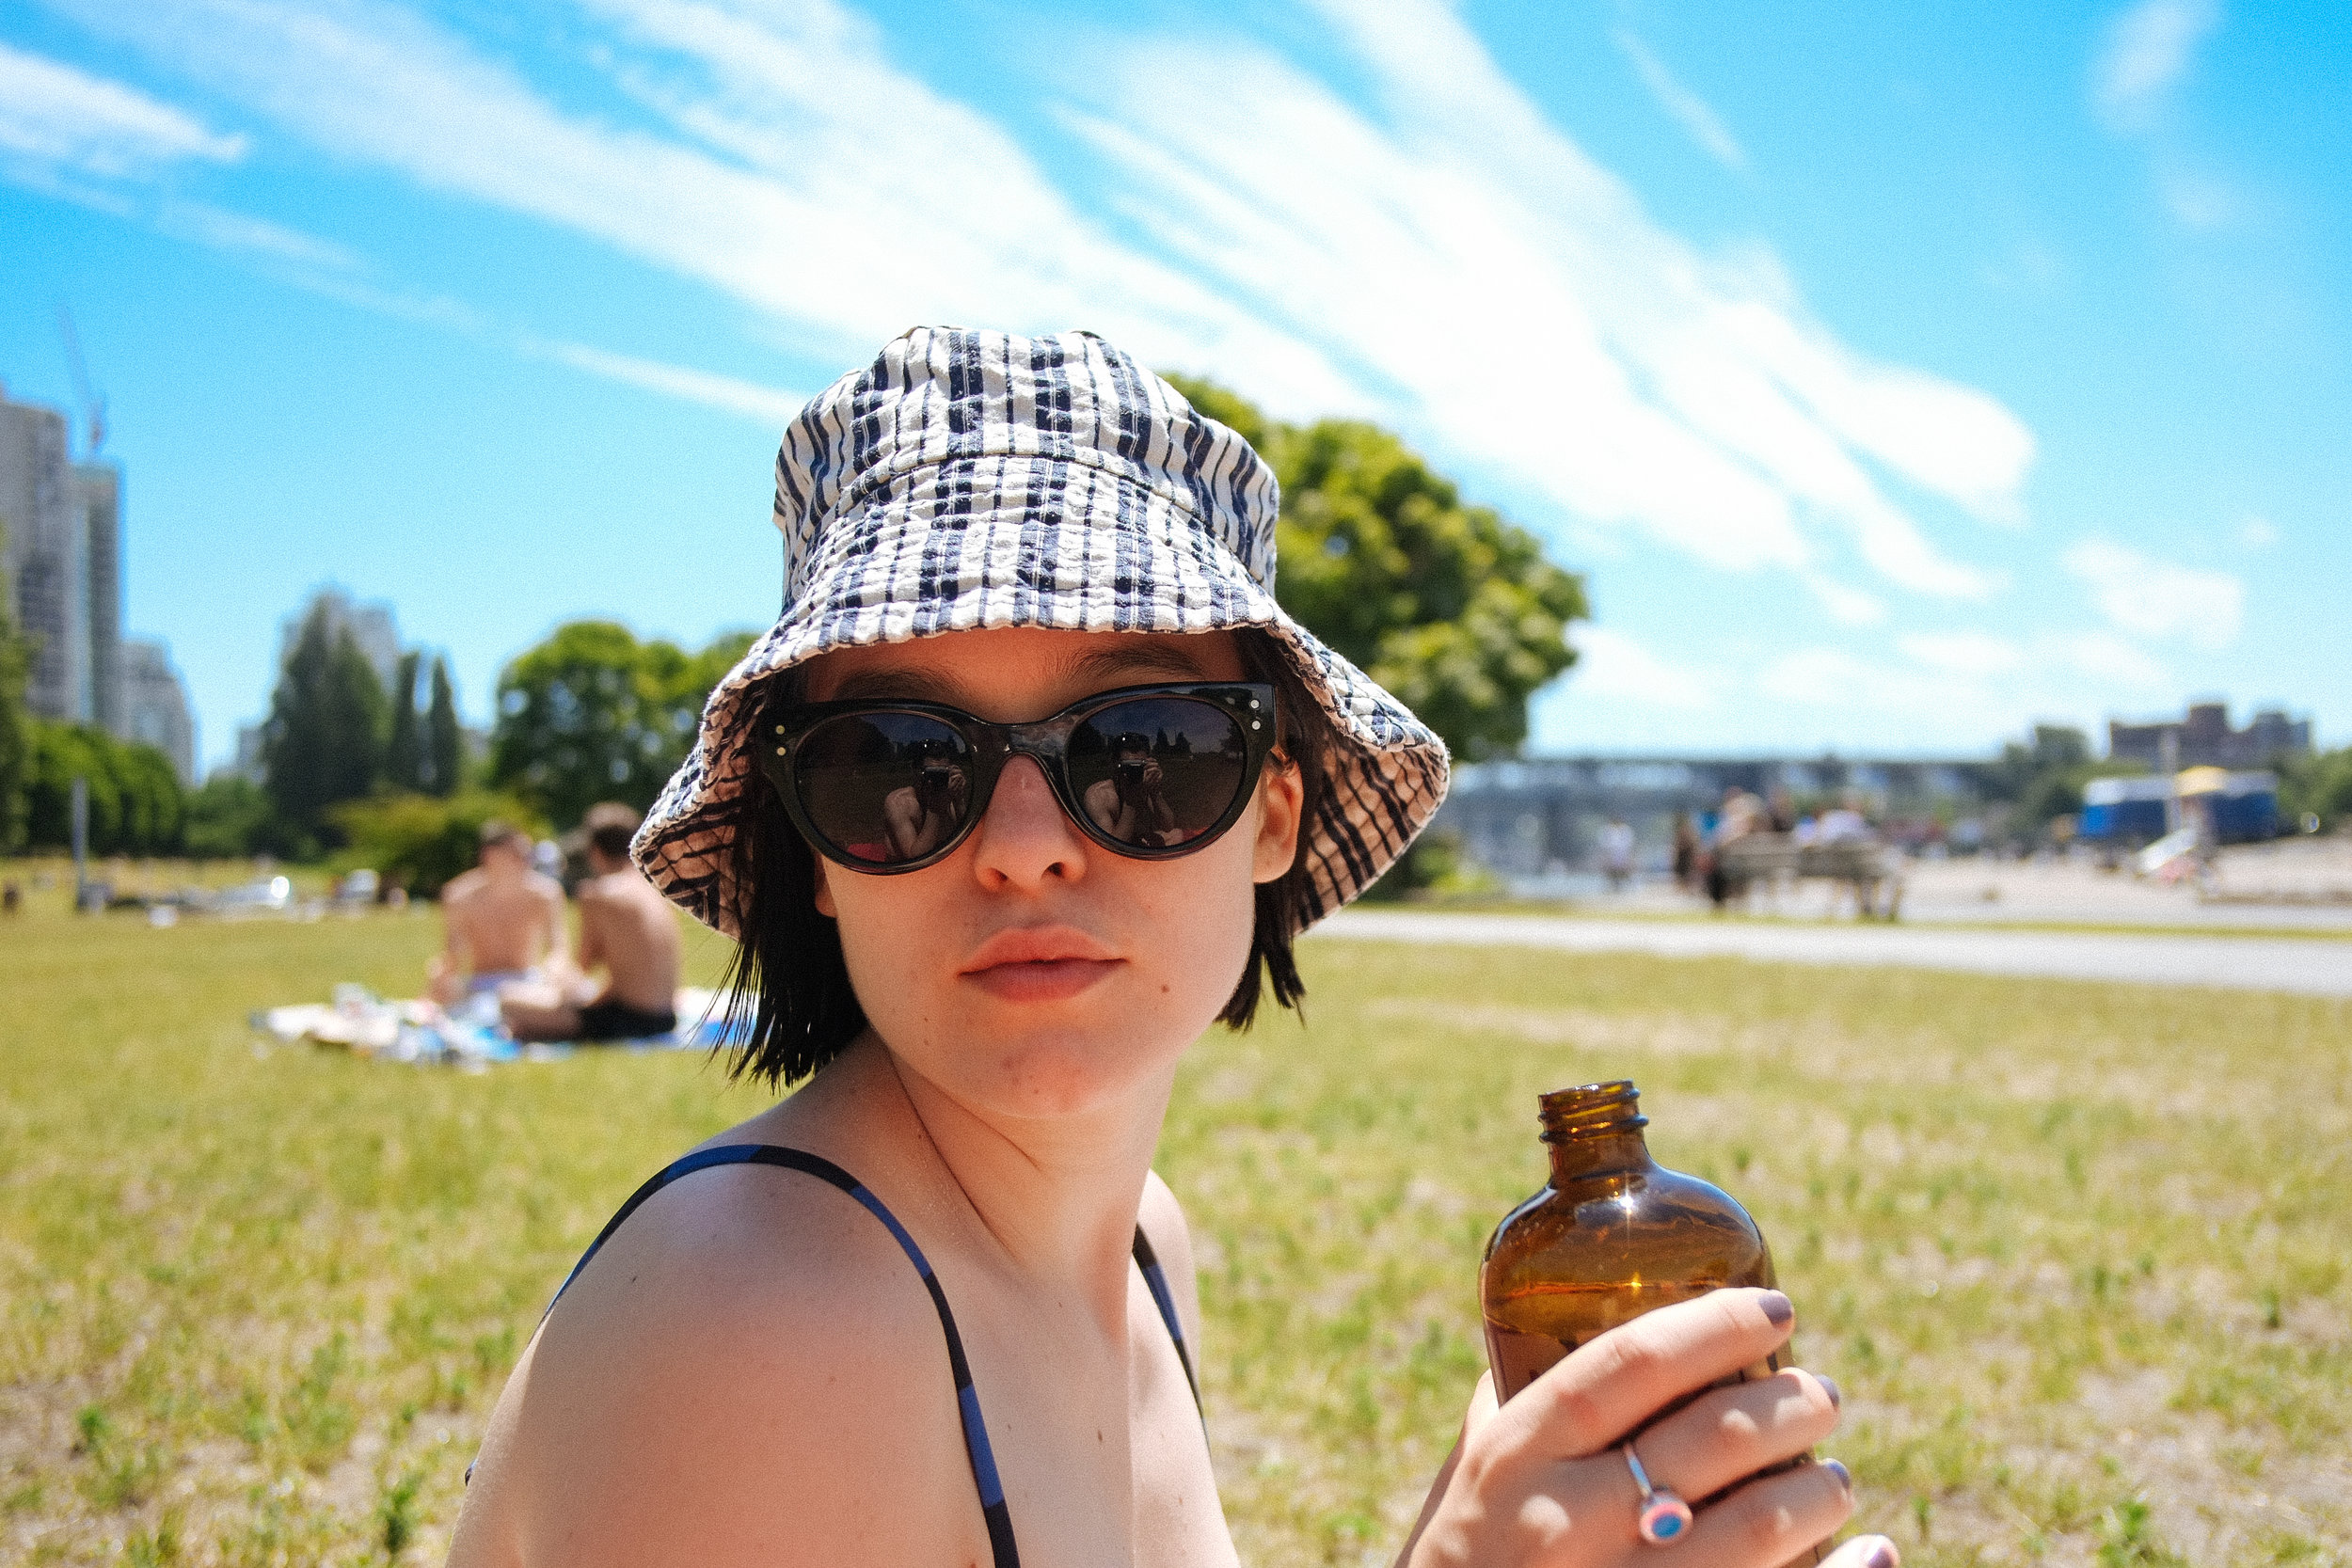 Summer Bike Hops - 2018-06-18: Raspberry Changeling's to-go, taken down to Sunset Beach, Vancouver, BC. Set up with Nicholas, a blanket, a bosé, and spf 30 (50 for the nose.) Daniella stopped by early, and a bunch more friends stopped by. Early departures from the few with Dad's in the city for Fathers Day. The first real feeling of that summer heat.